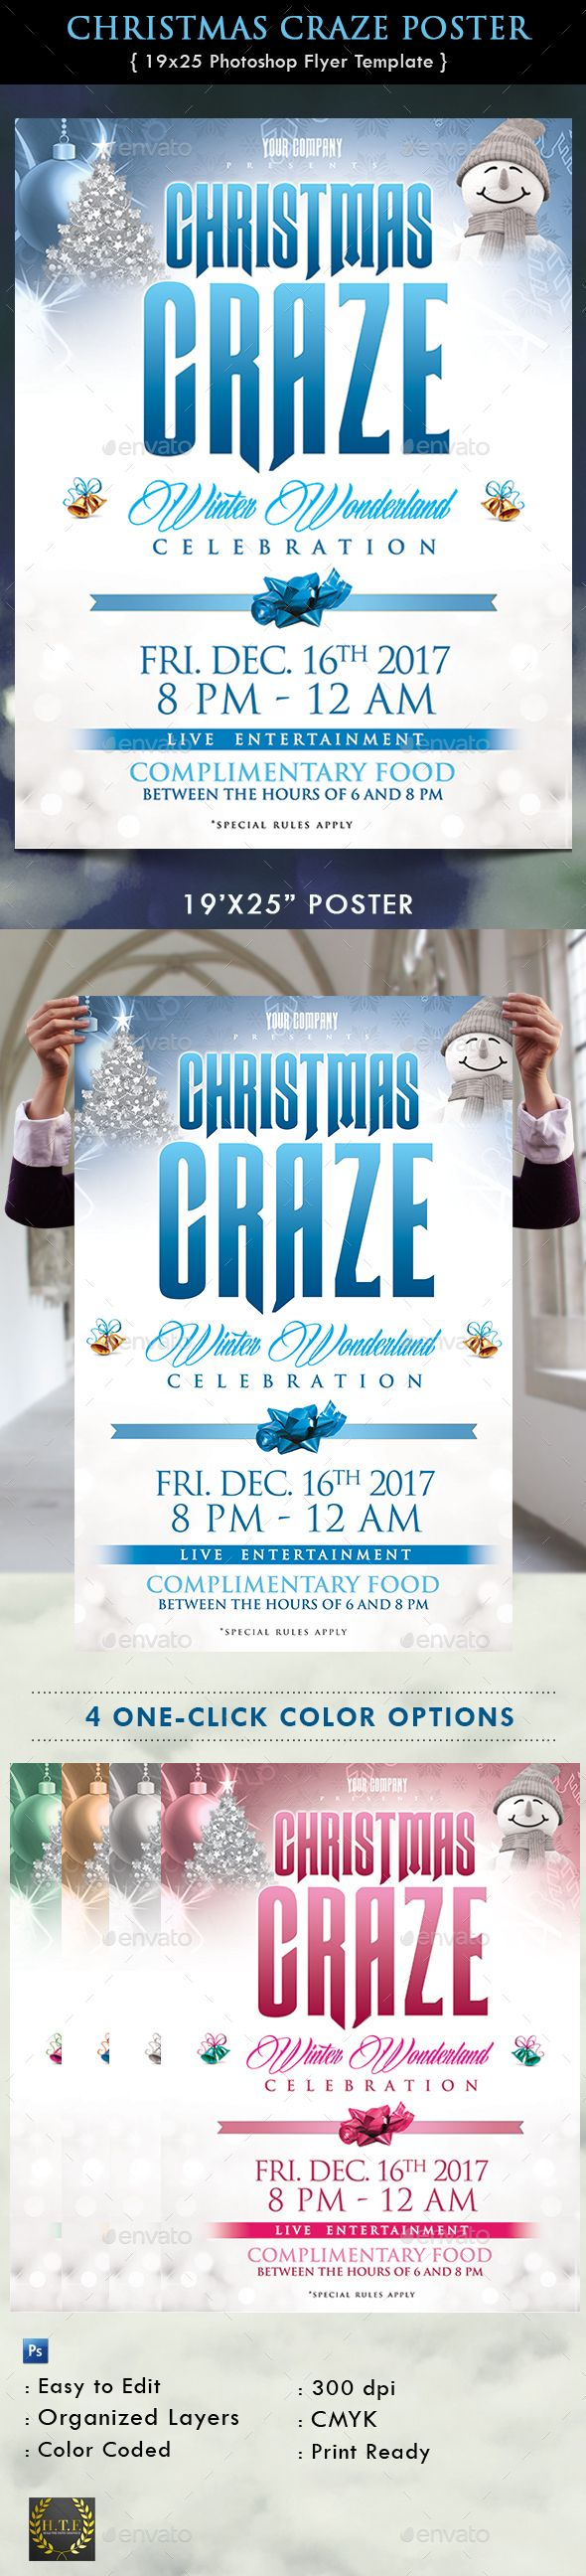 best images about christmas print templates christmas craze poster